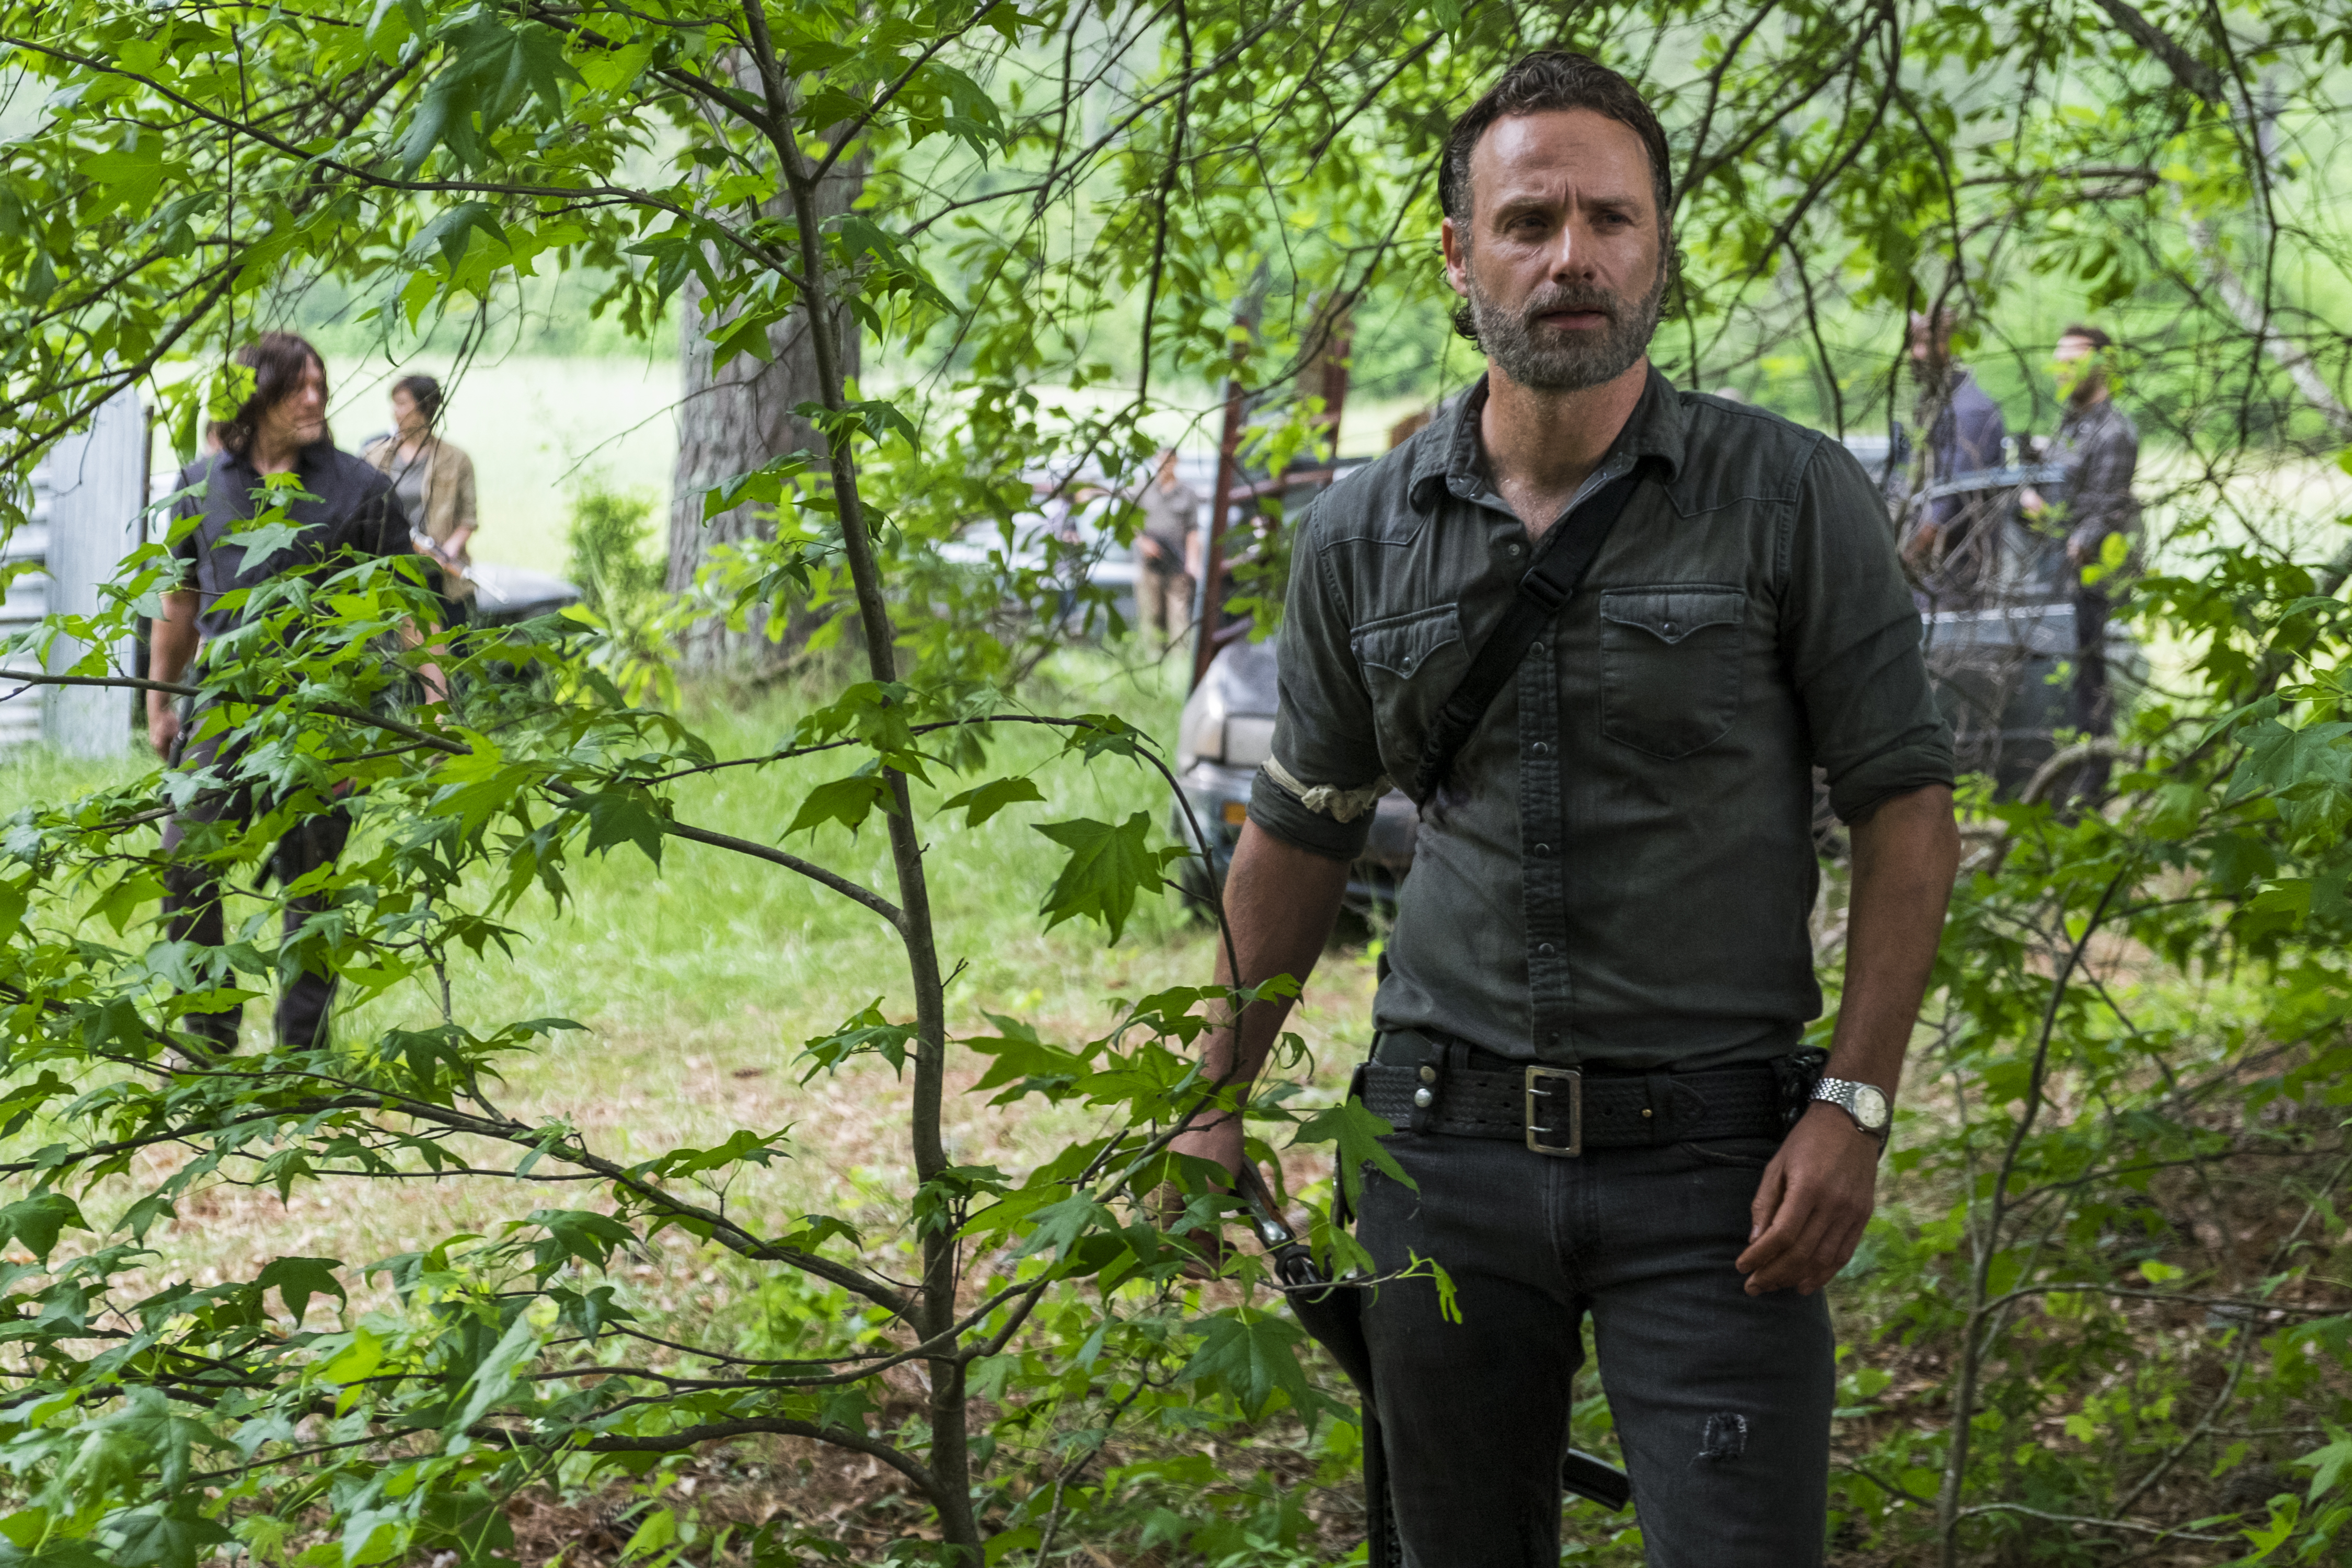 Andrew Lincoln as Rick Grimes in The Walking Dead - Season 8, Episode 1